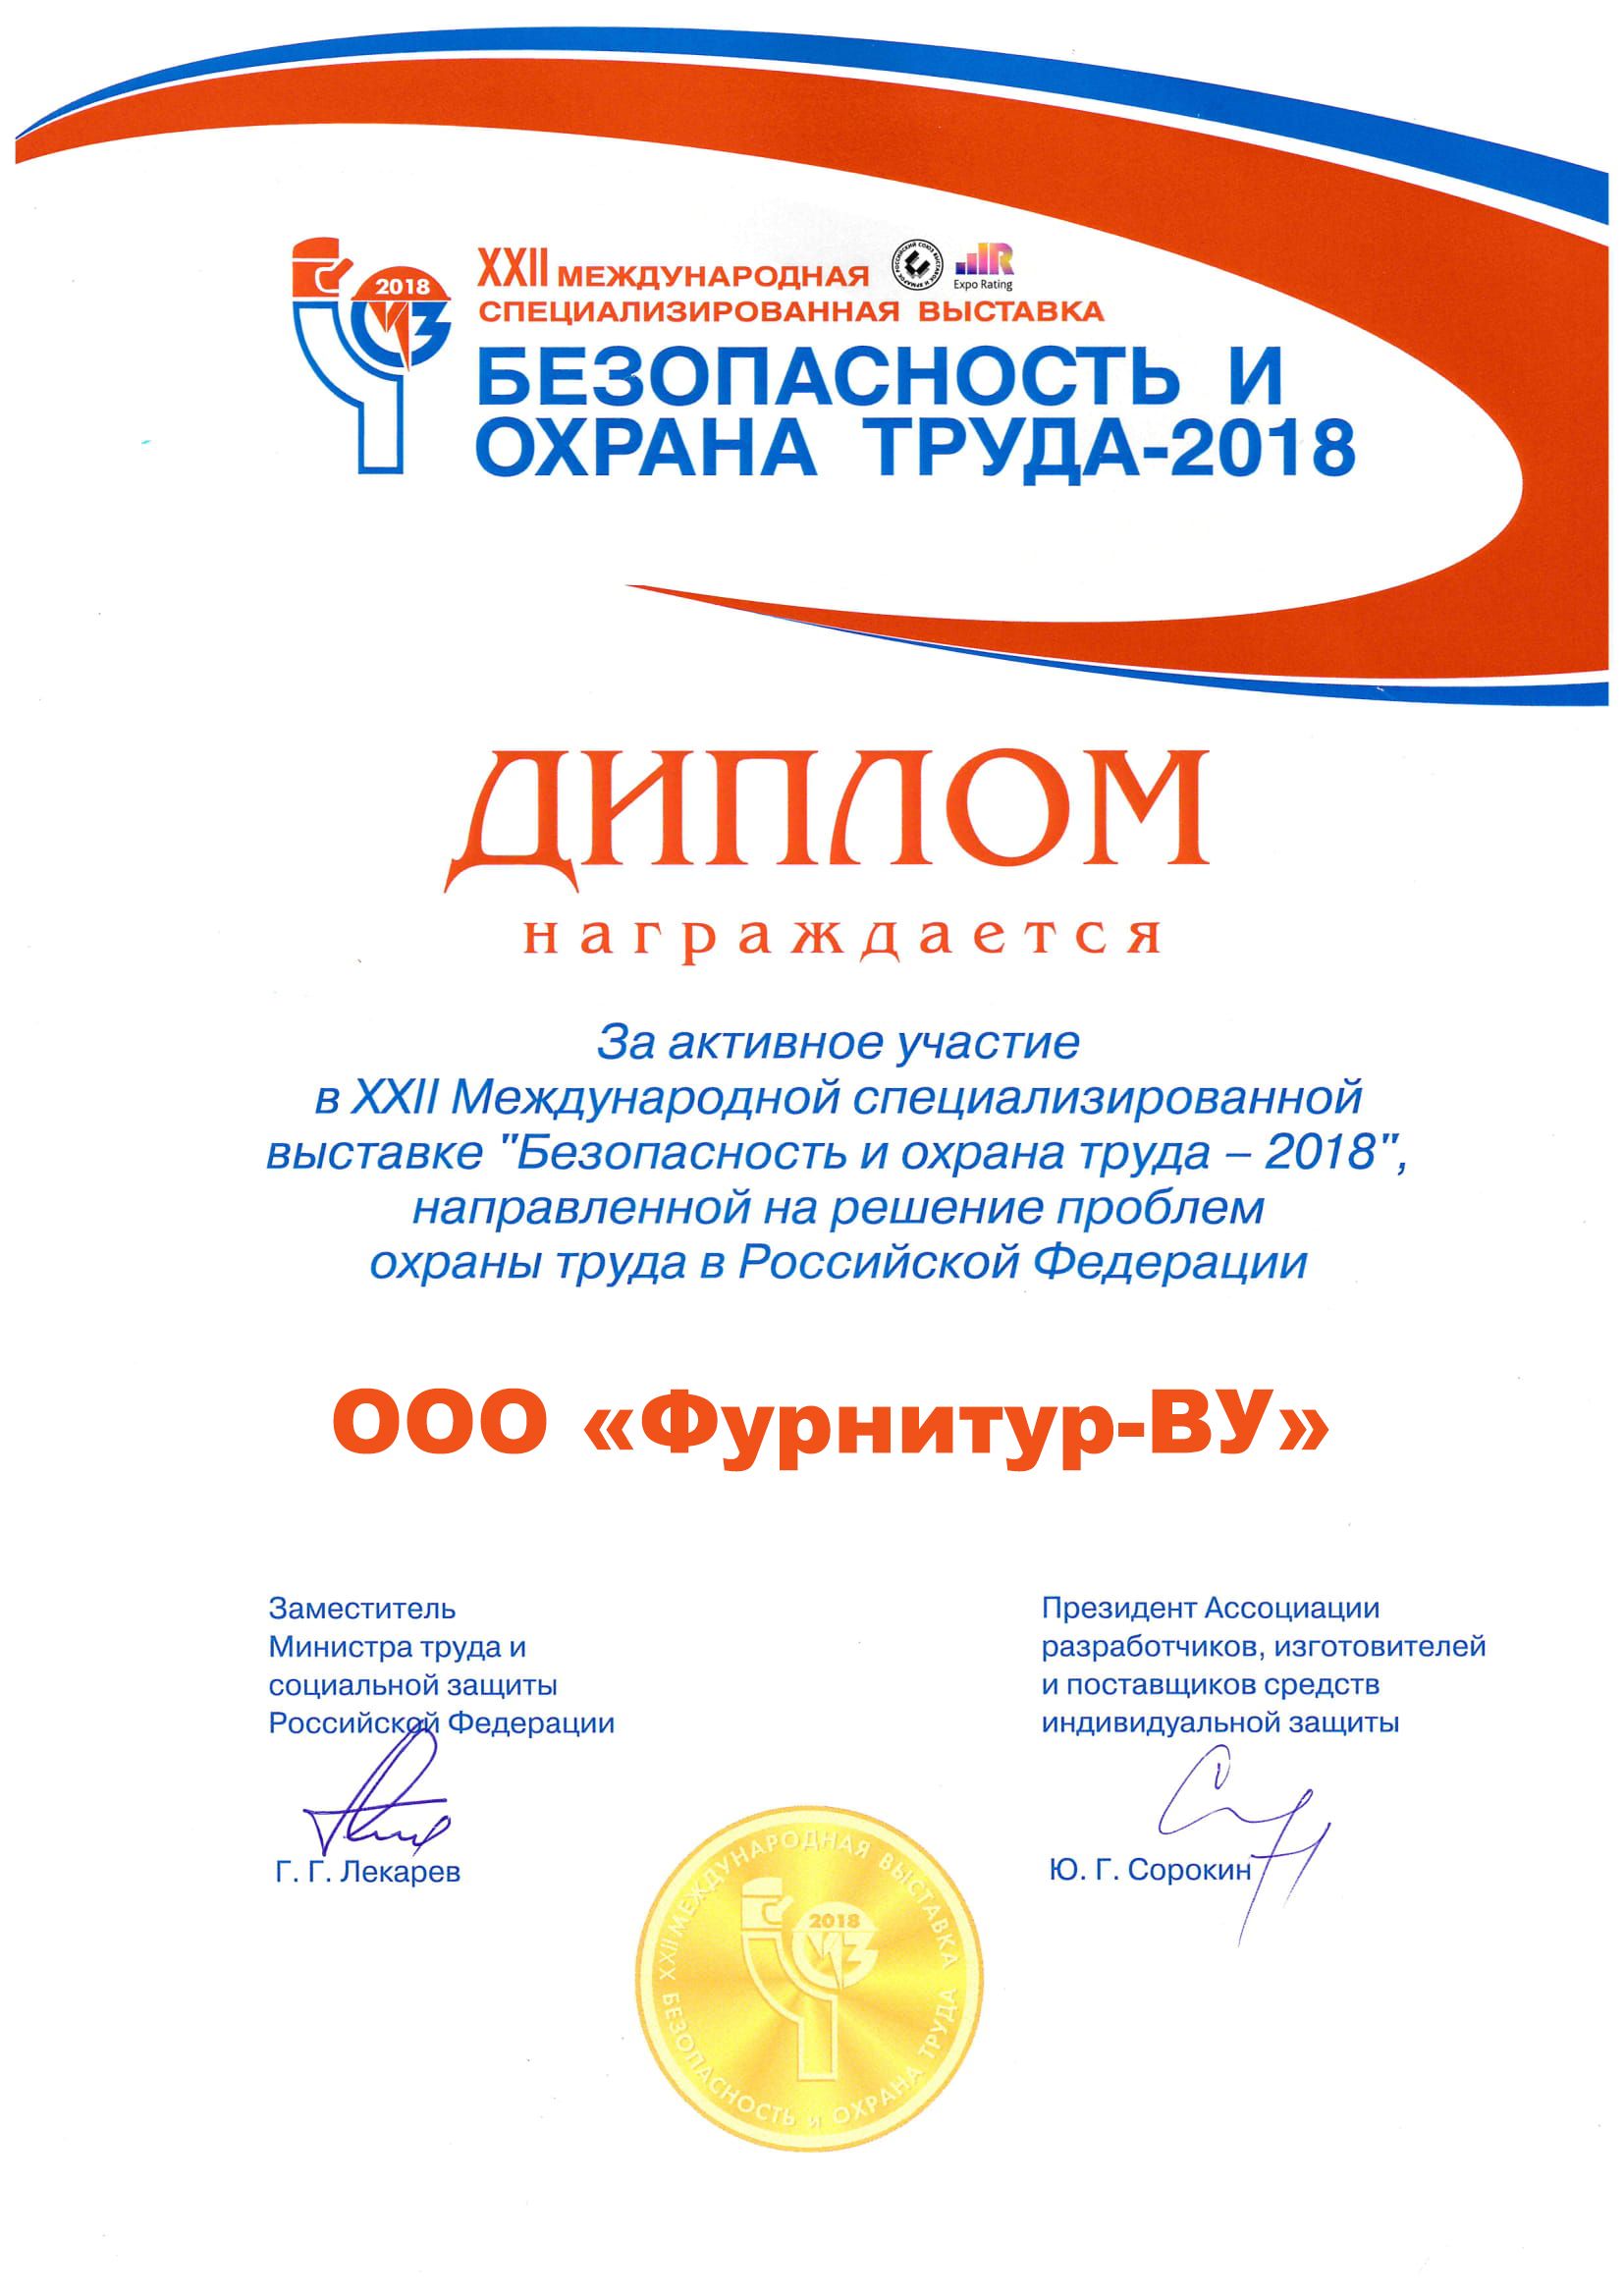 Safety and health 2018 (Moscow)